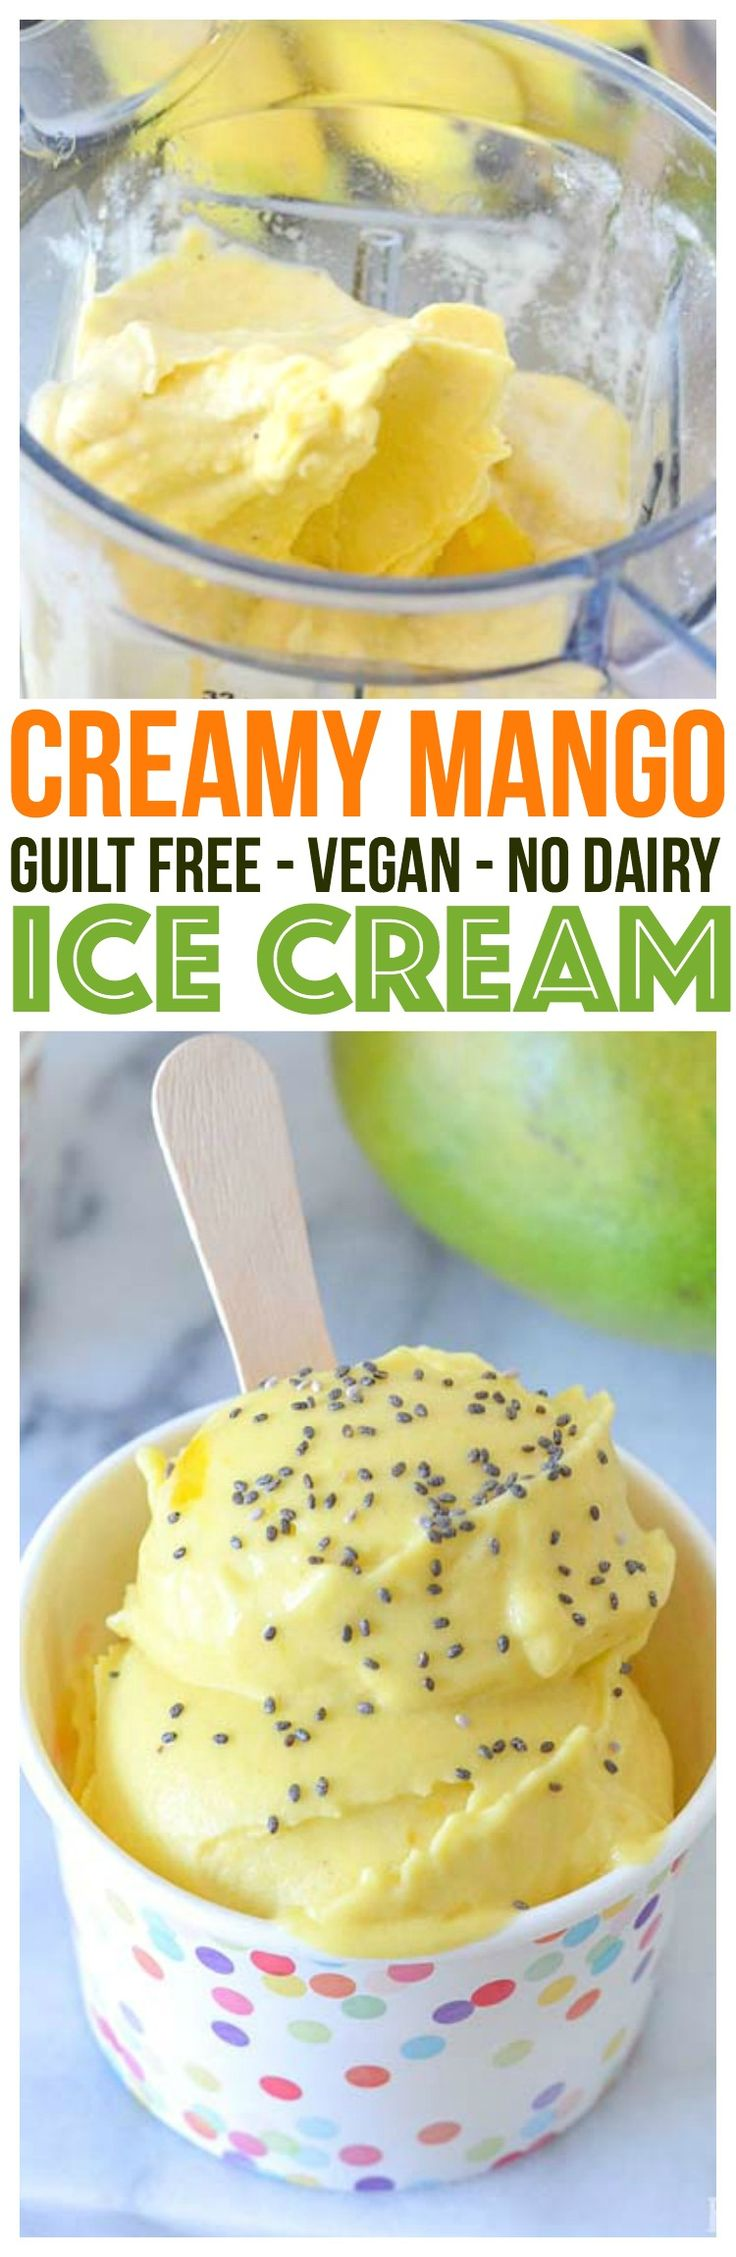 Vitamix Recipe Creamy Mango Ice Cream Recipe with healthy superfoods like chia seeds for ice cream sprinkles. Gluten Free, Dairy Free, Vegan Dessert.   via @KnowYourProduce